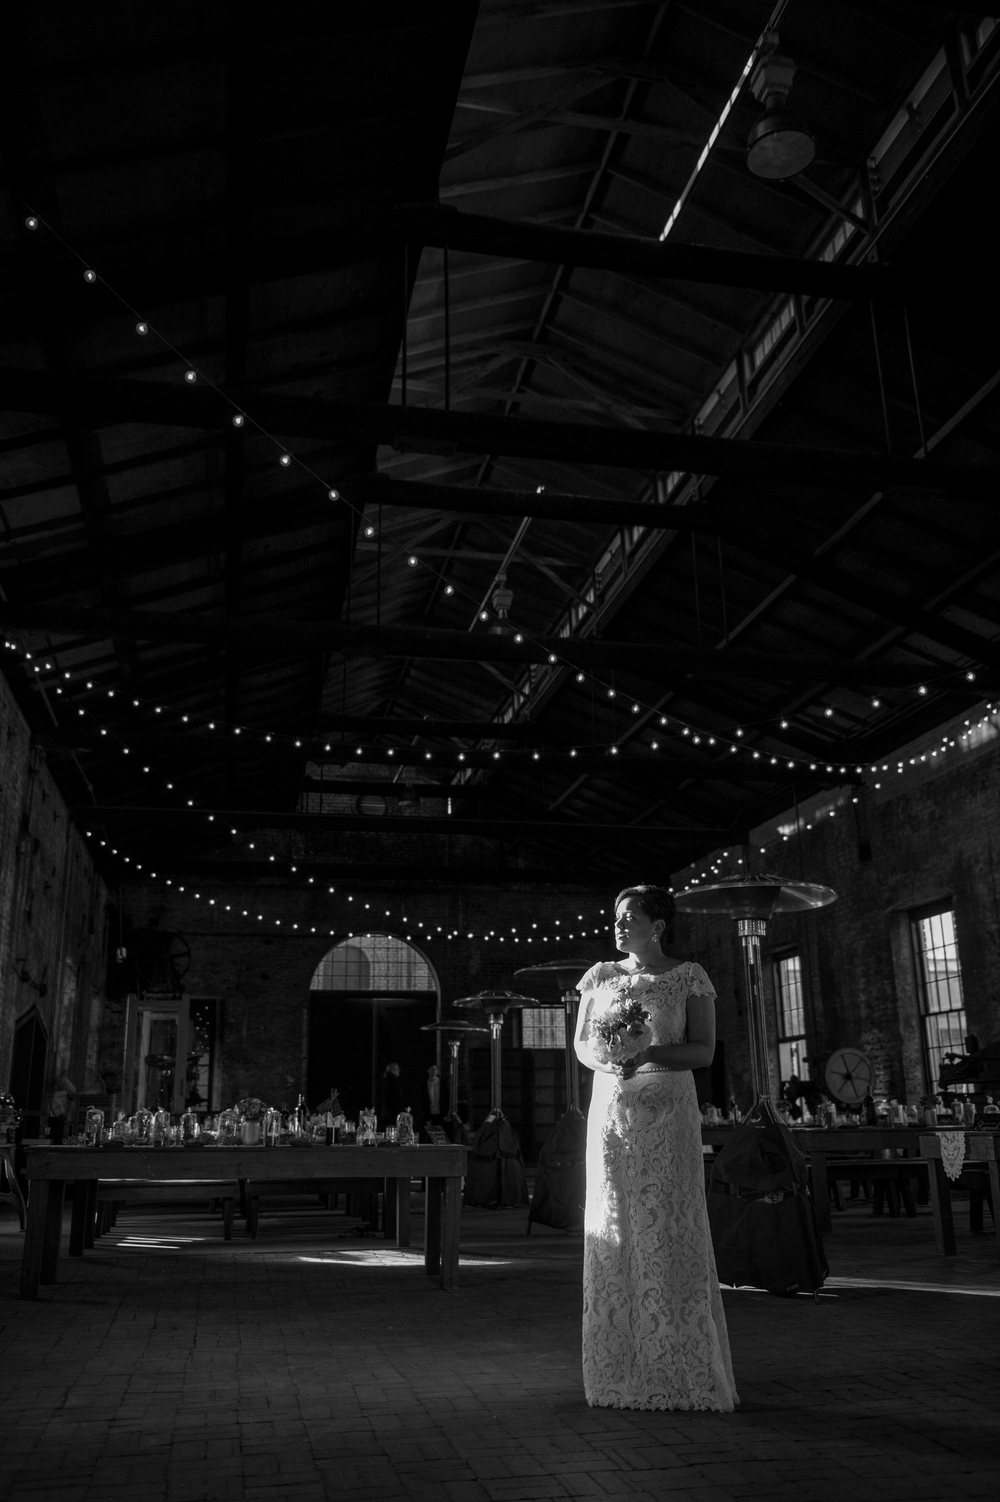 capree-kyle-la-vega-fotografie-roundhouse-railroad-museum-wedding-savannah-wedding-planner-rustic-savannah-wedding-museum-wedding-ivory-and-beau-savannah-bridal-boutique-savannah-weddings-savannah-event-designer-savannah-florist-10.jpg